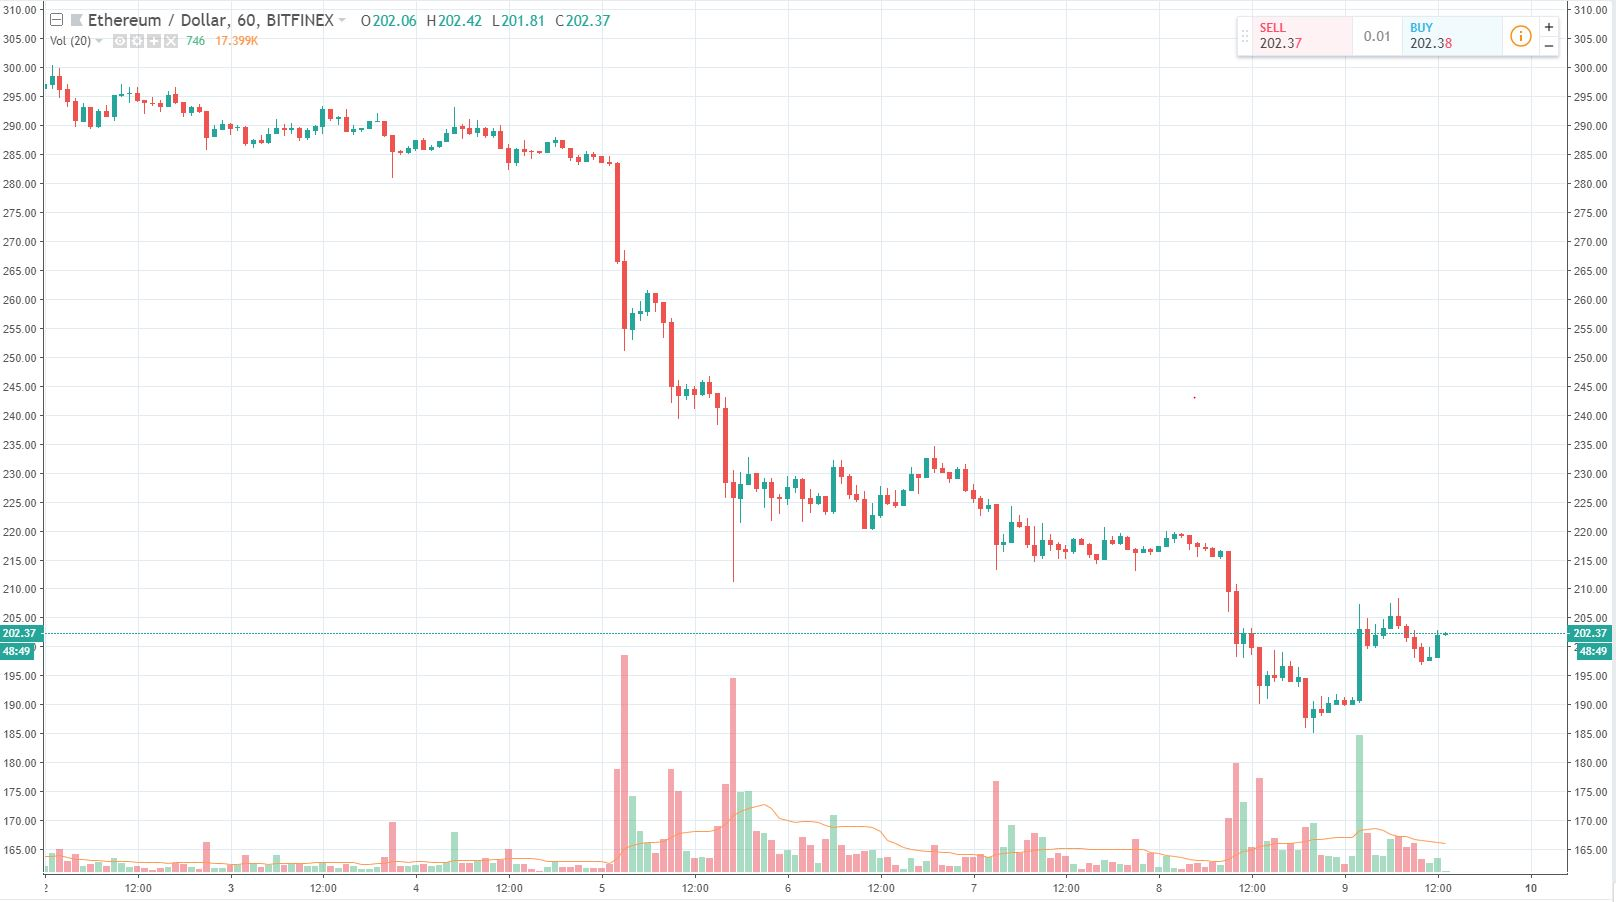 Ethereum (ETH) Continues To Underperform, Are ICOs To Blame? 14